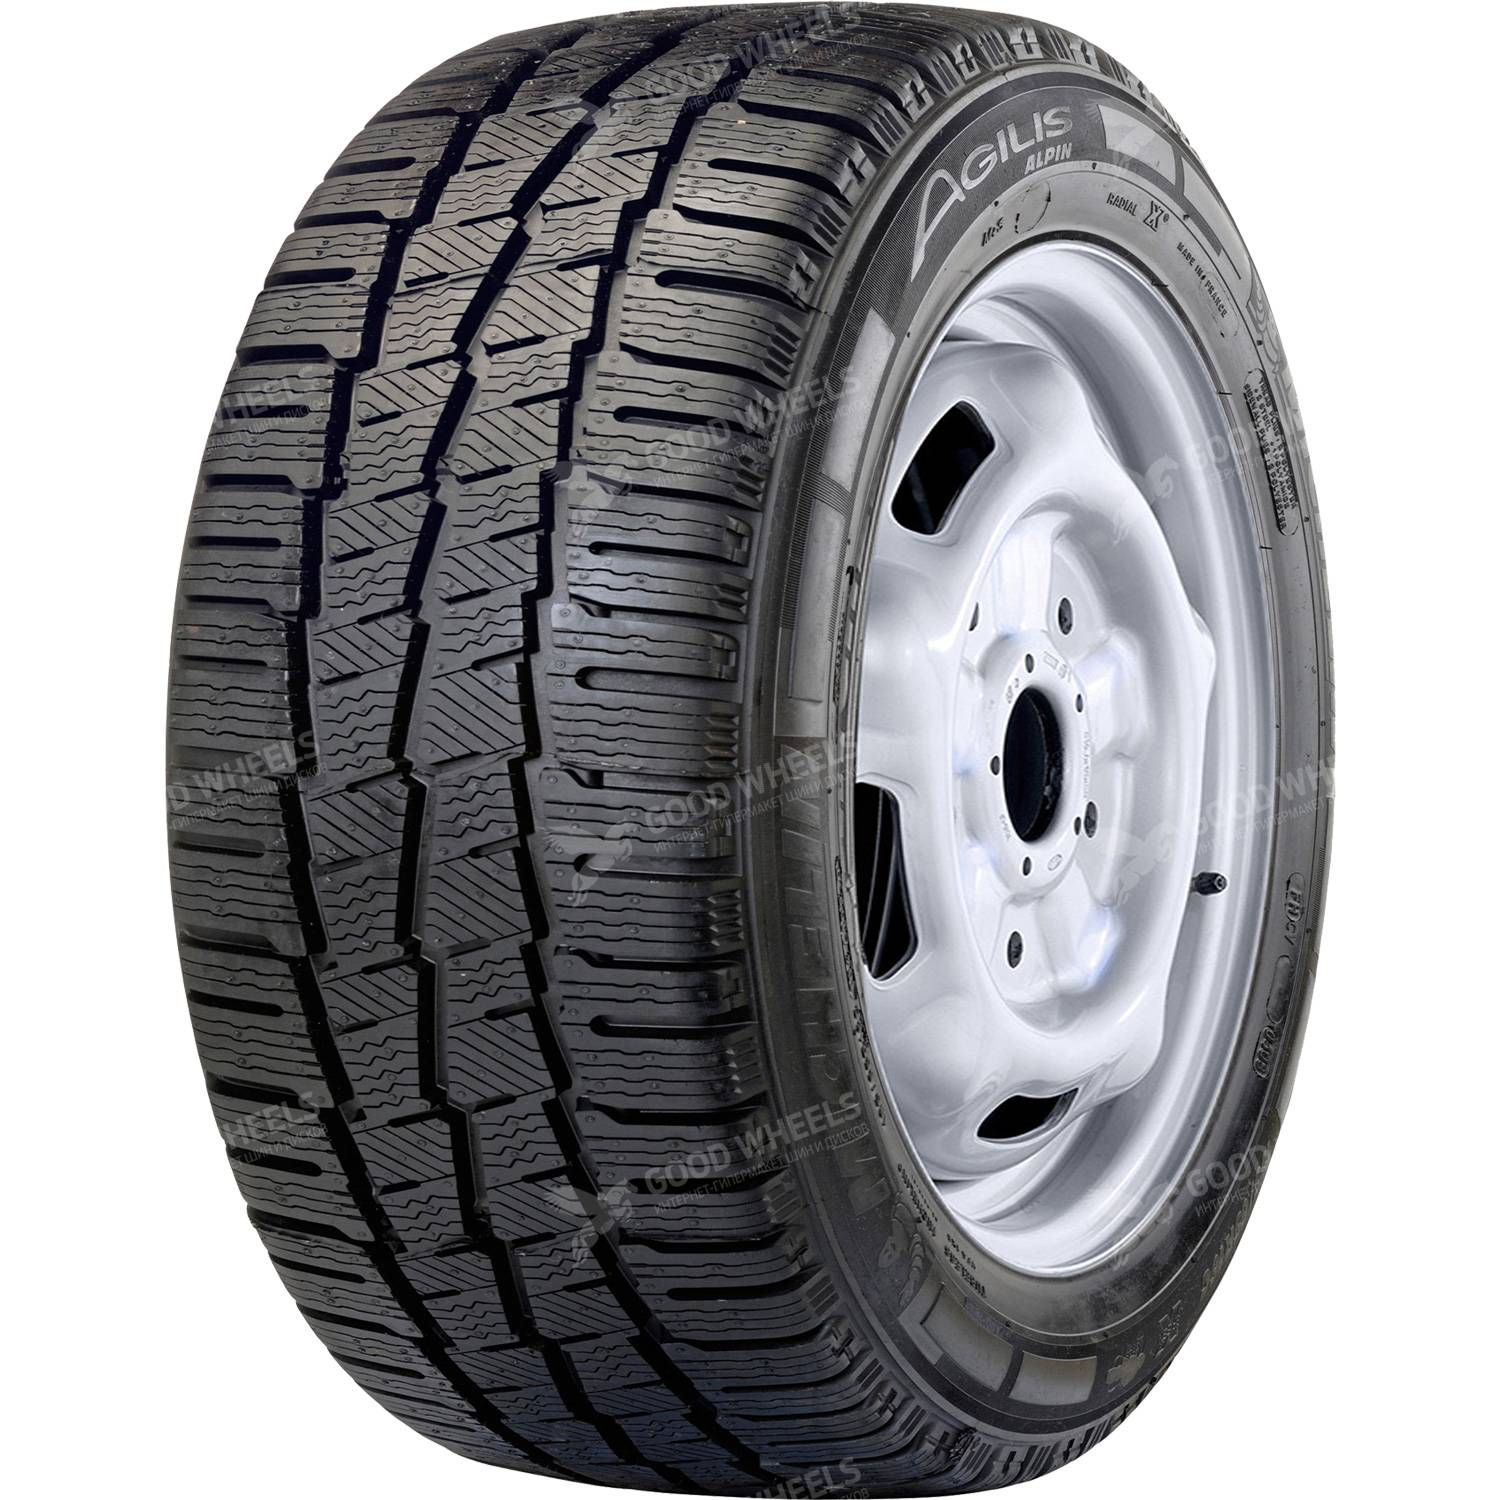 Michelin Agilis Alpin 215/70 R15 109/107R